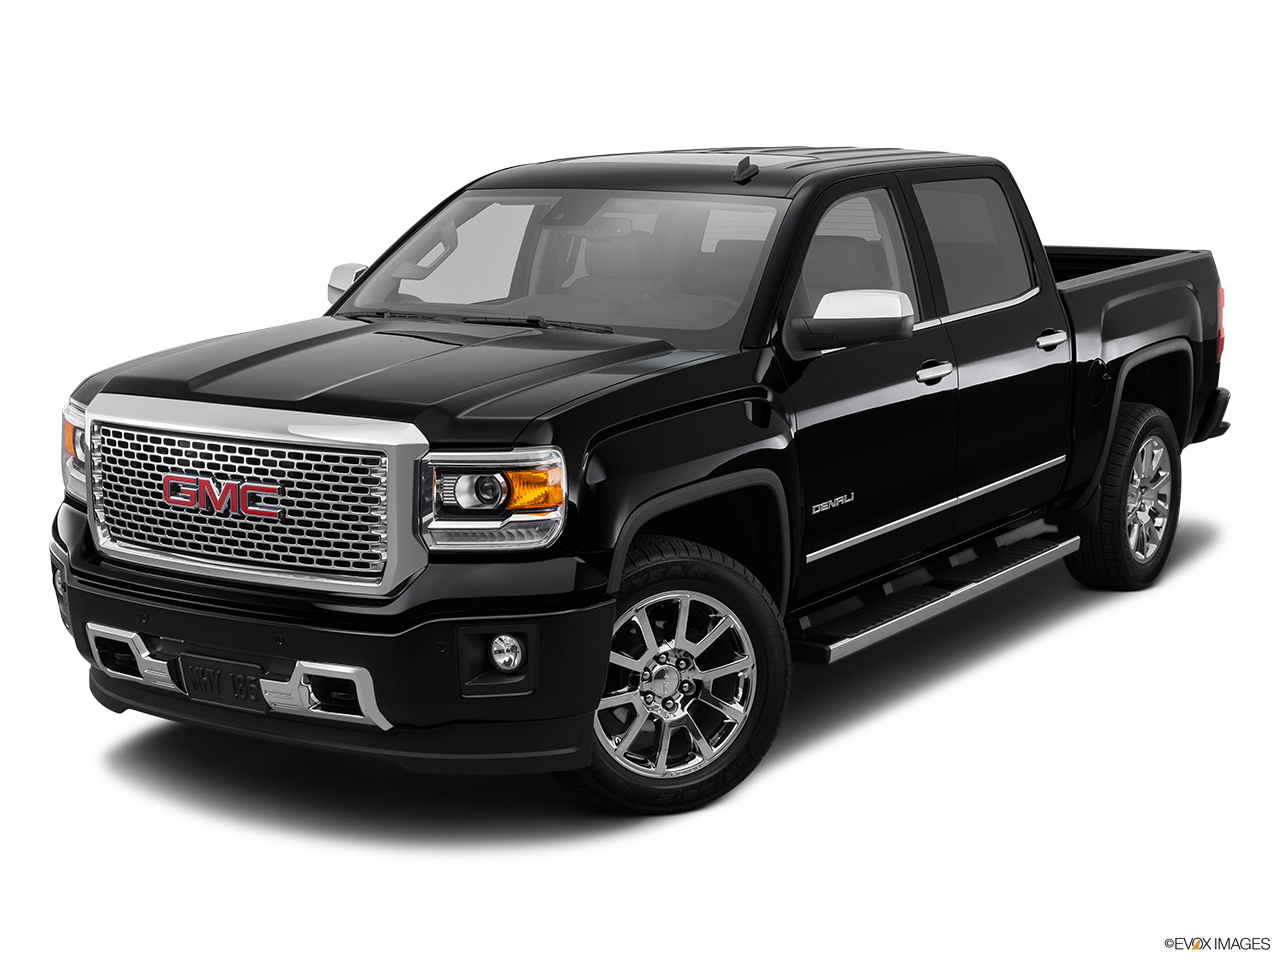 2014 gmc sierra 1500 2wd crew cab 153 0 denali. Black Bedroom Furniture Sets. Home Design Ideas